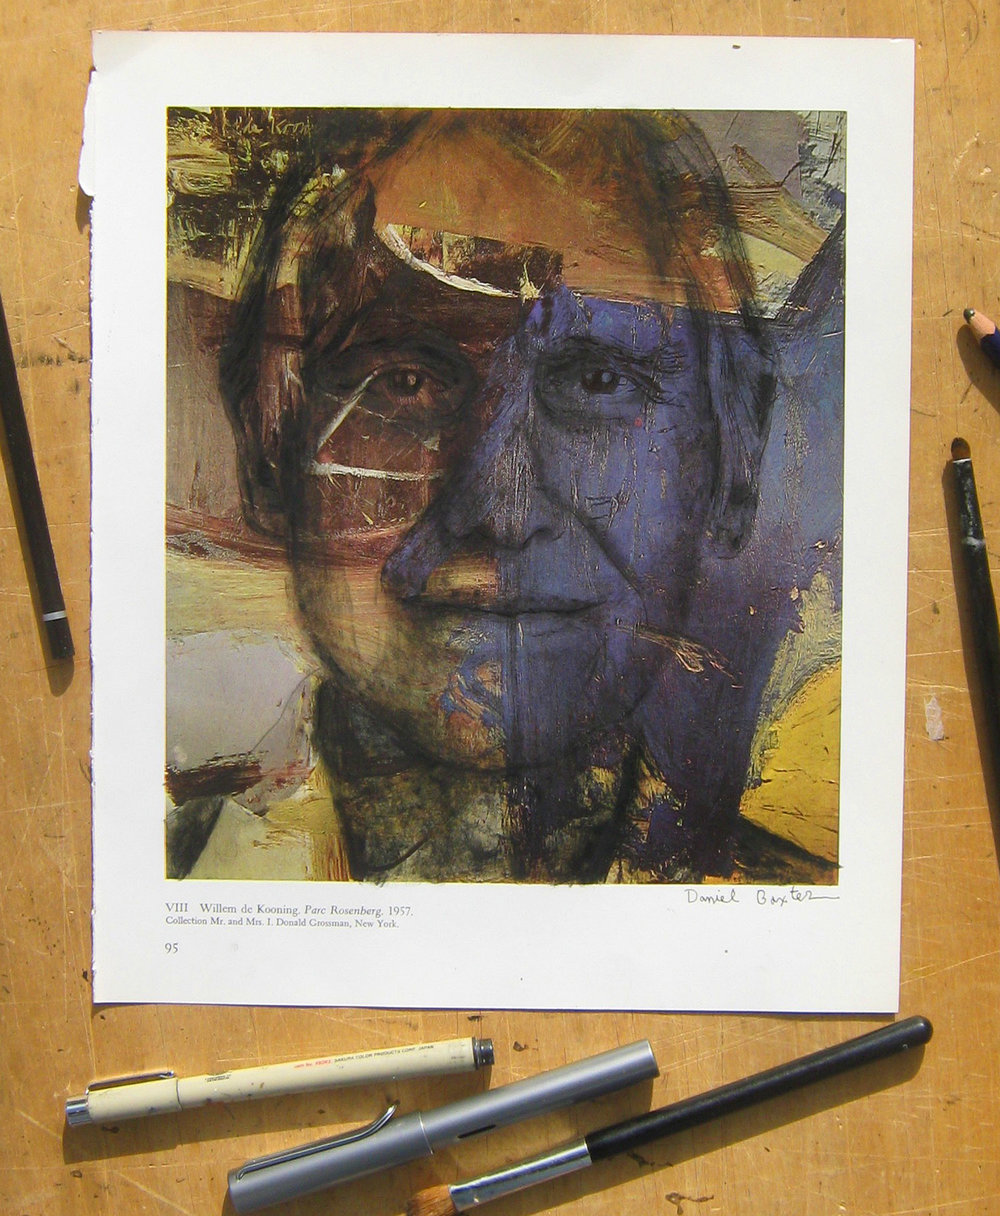 Copyright Daniel Baxter de Kooning drawing photo.jpg